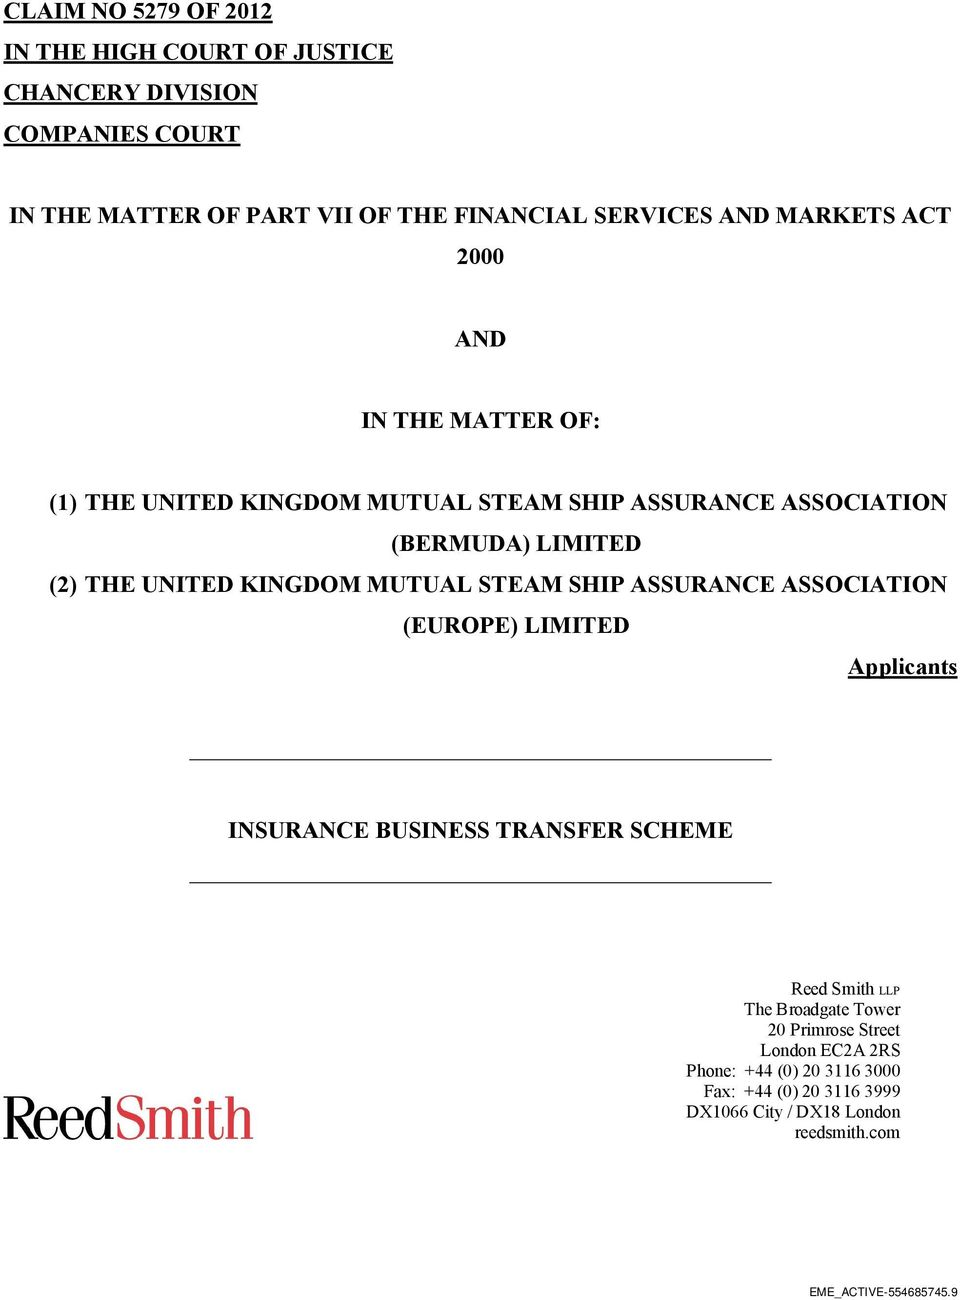 UNITED KINGDOM MUTUAL STEAM SHIP ASSURANCE ASSOCIATION (EUROPE) LIMITED Applicants INSURANCE BUSINESS TRANSFER SCHEME Reed Smith LLP The